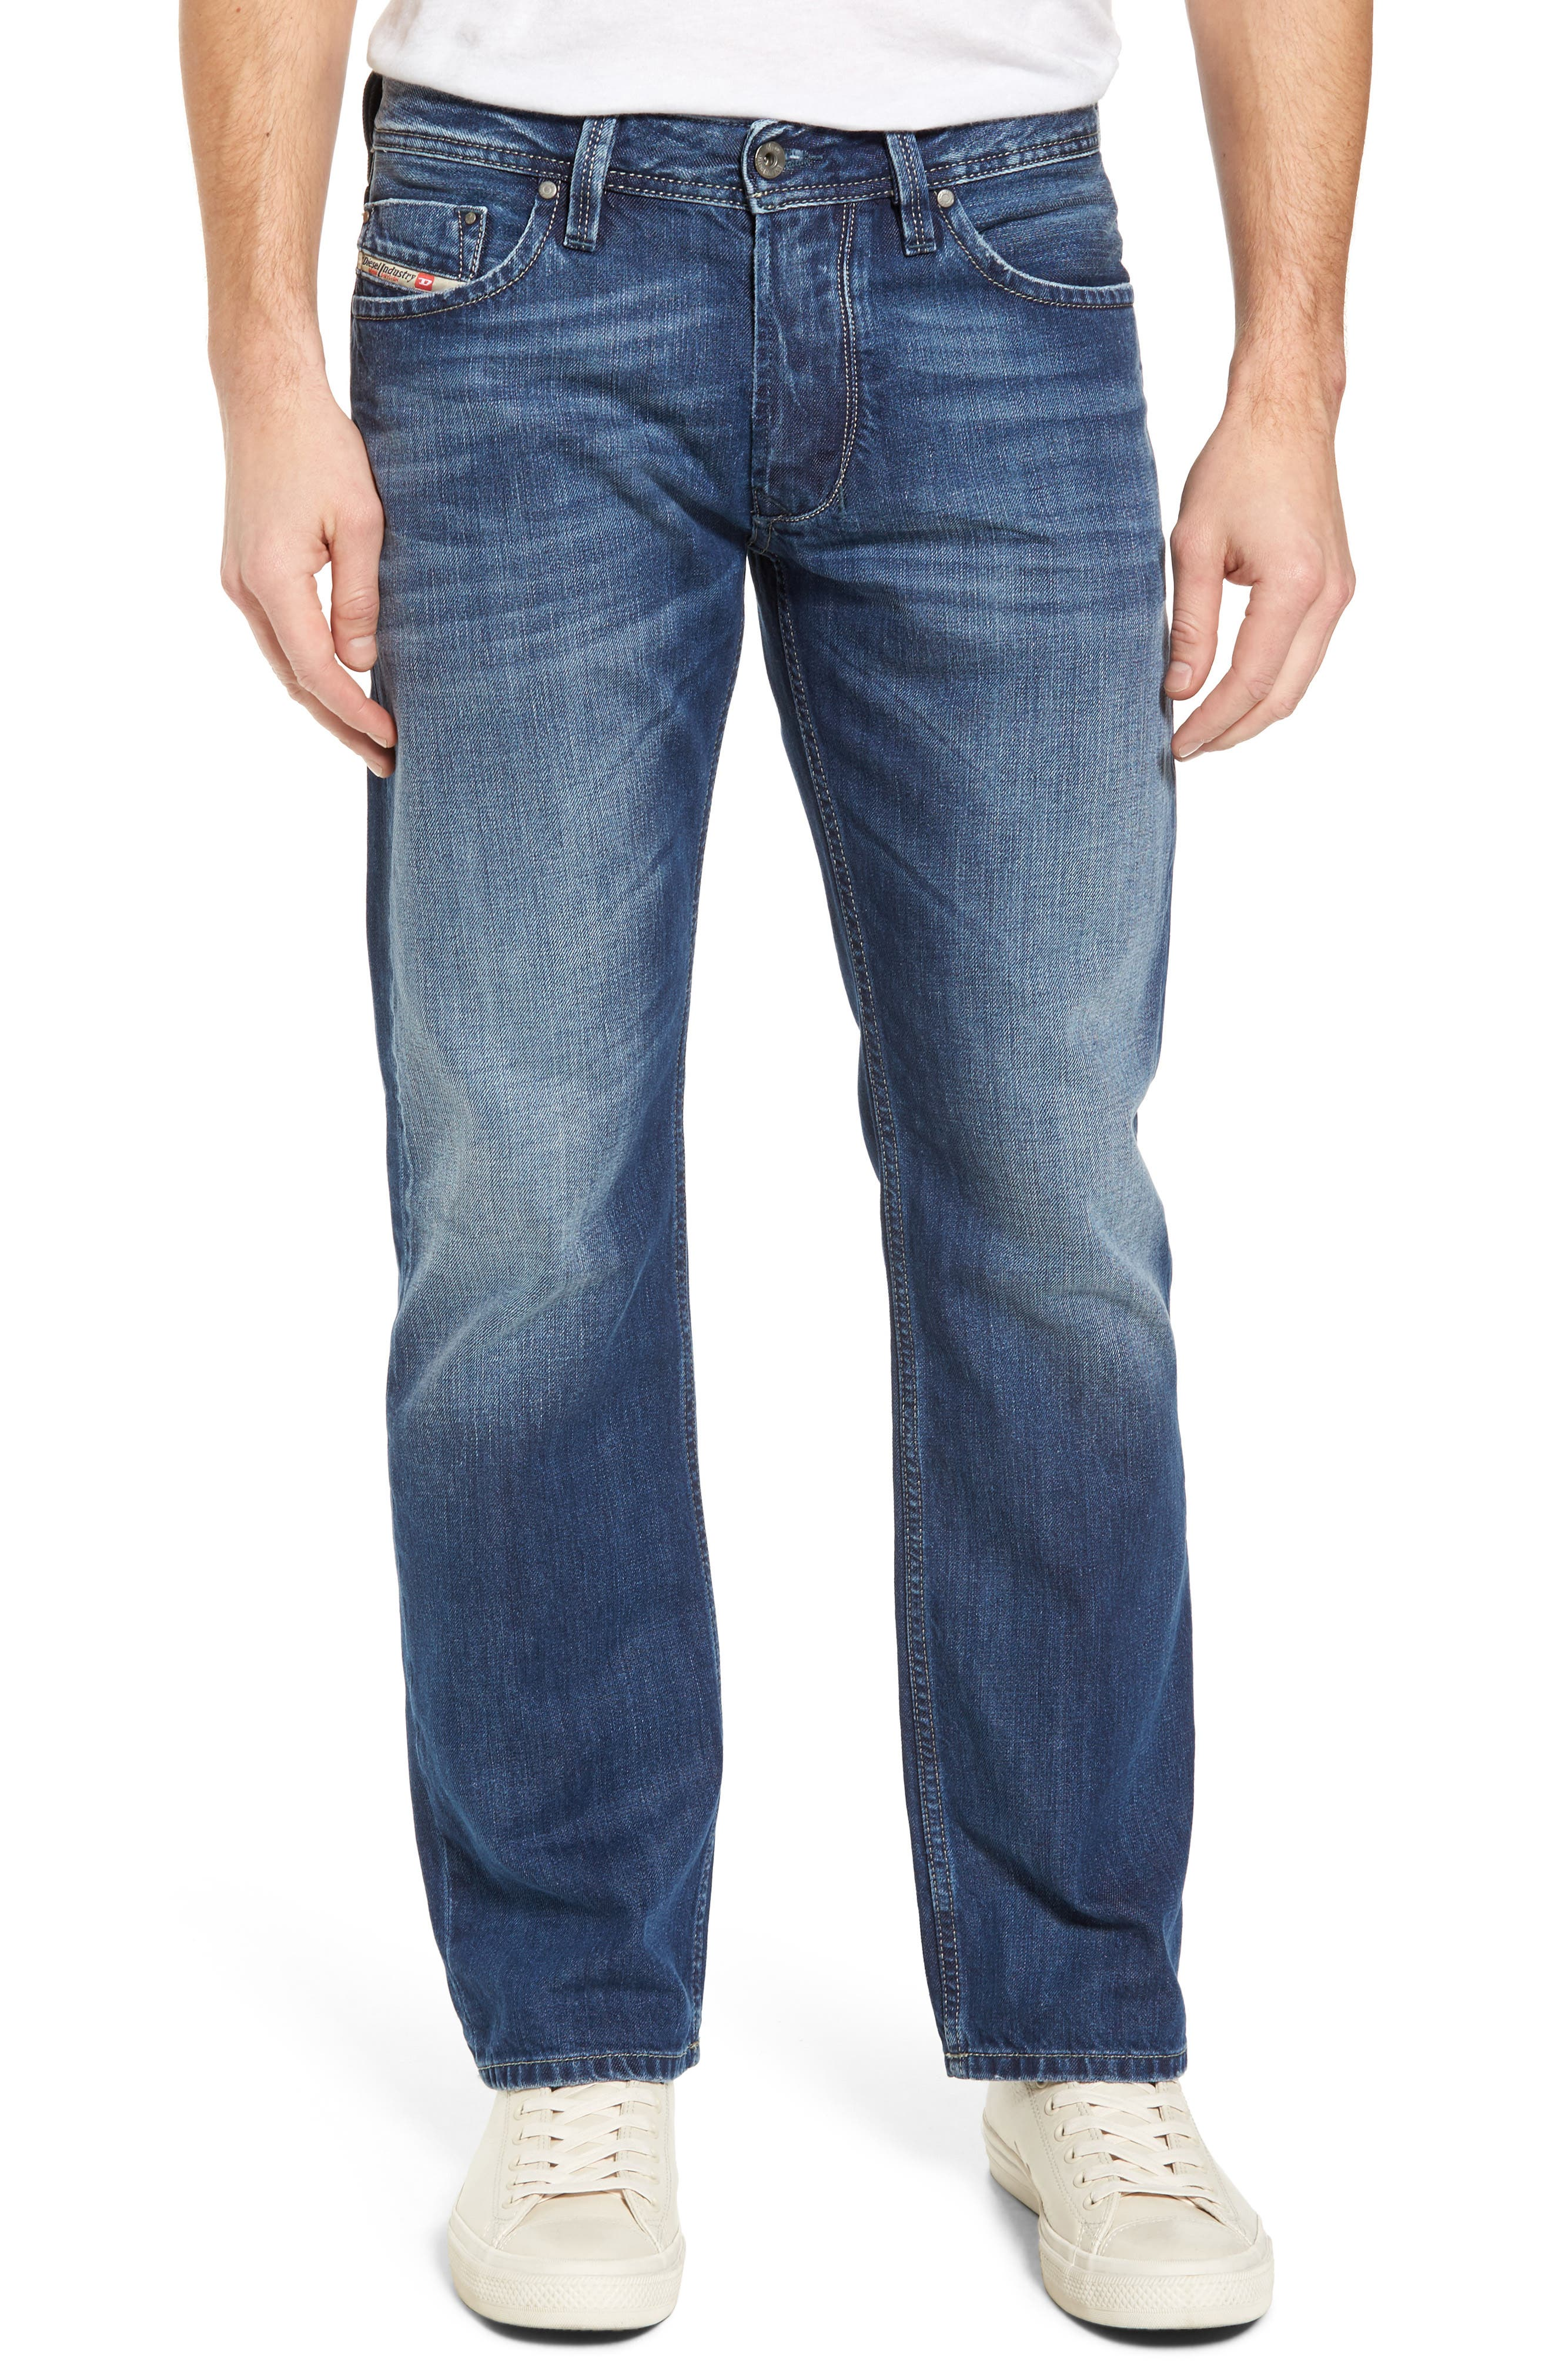 Larkee Relaxed Fit Jeans,                         Main,                         color, 008Xr